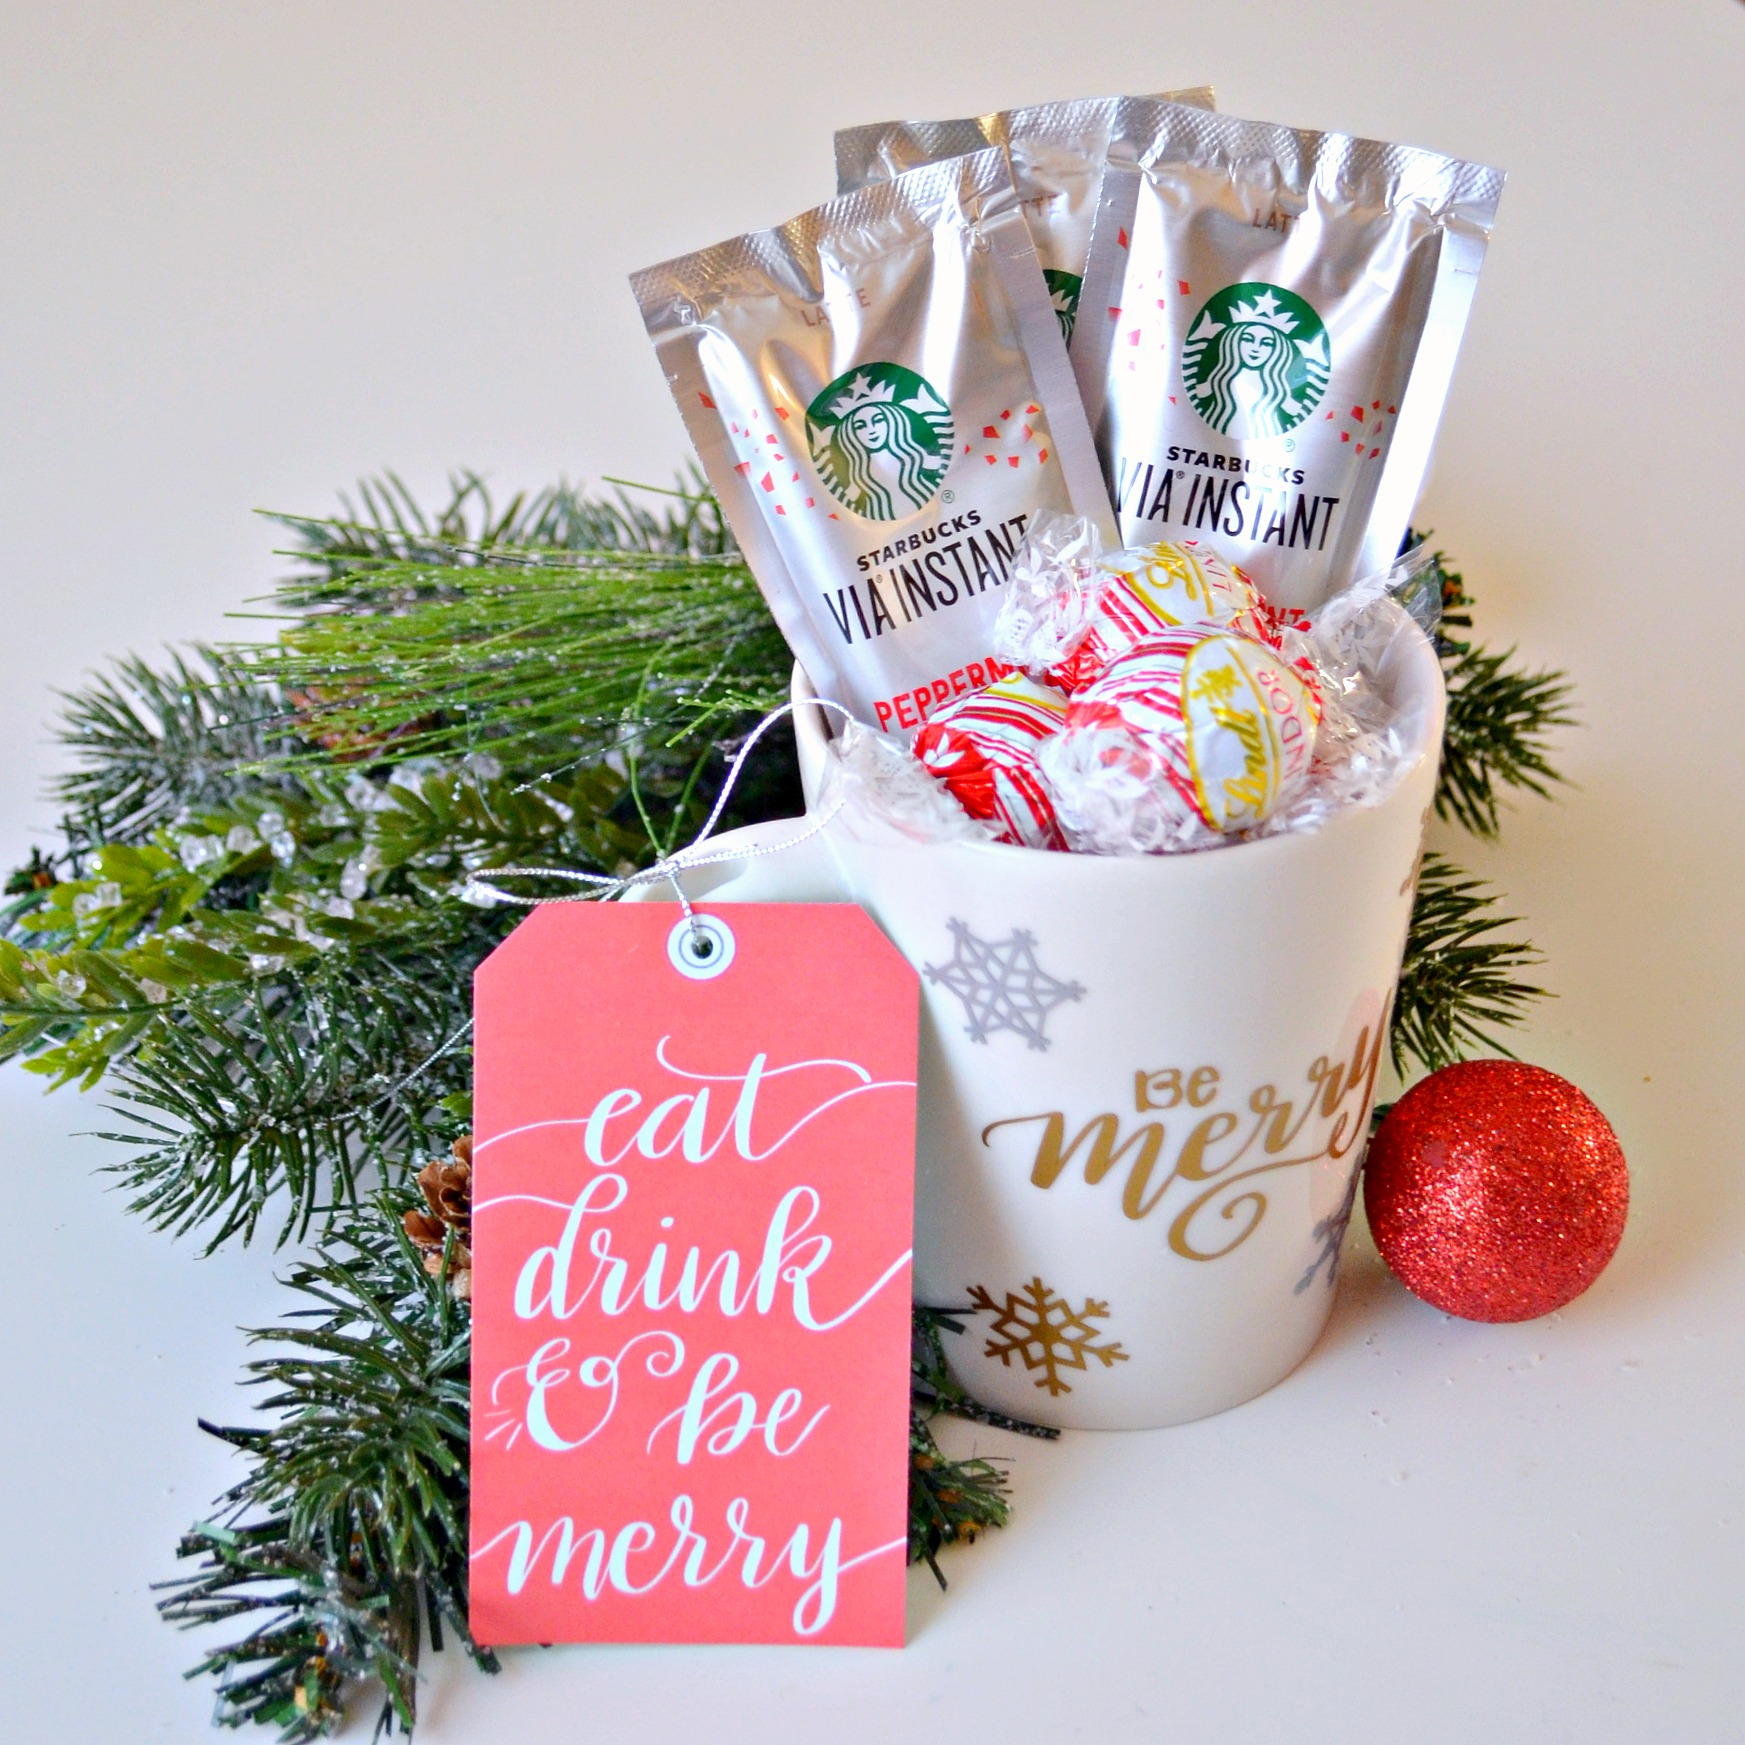 Starbucks & Lindt Gift Idea